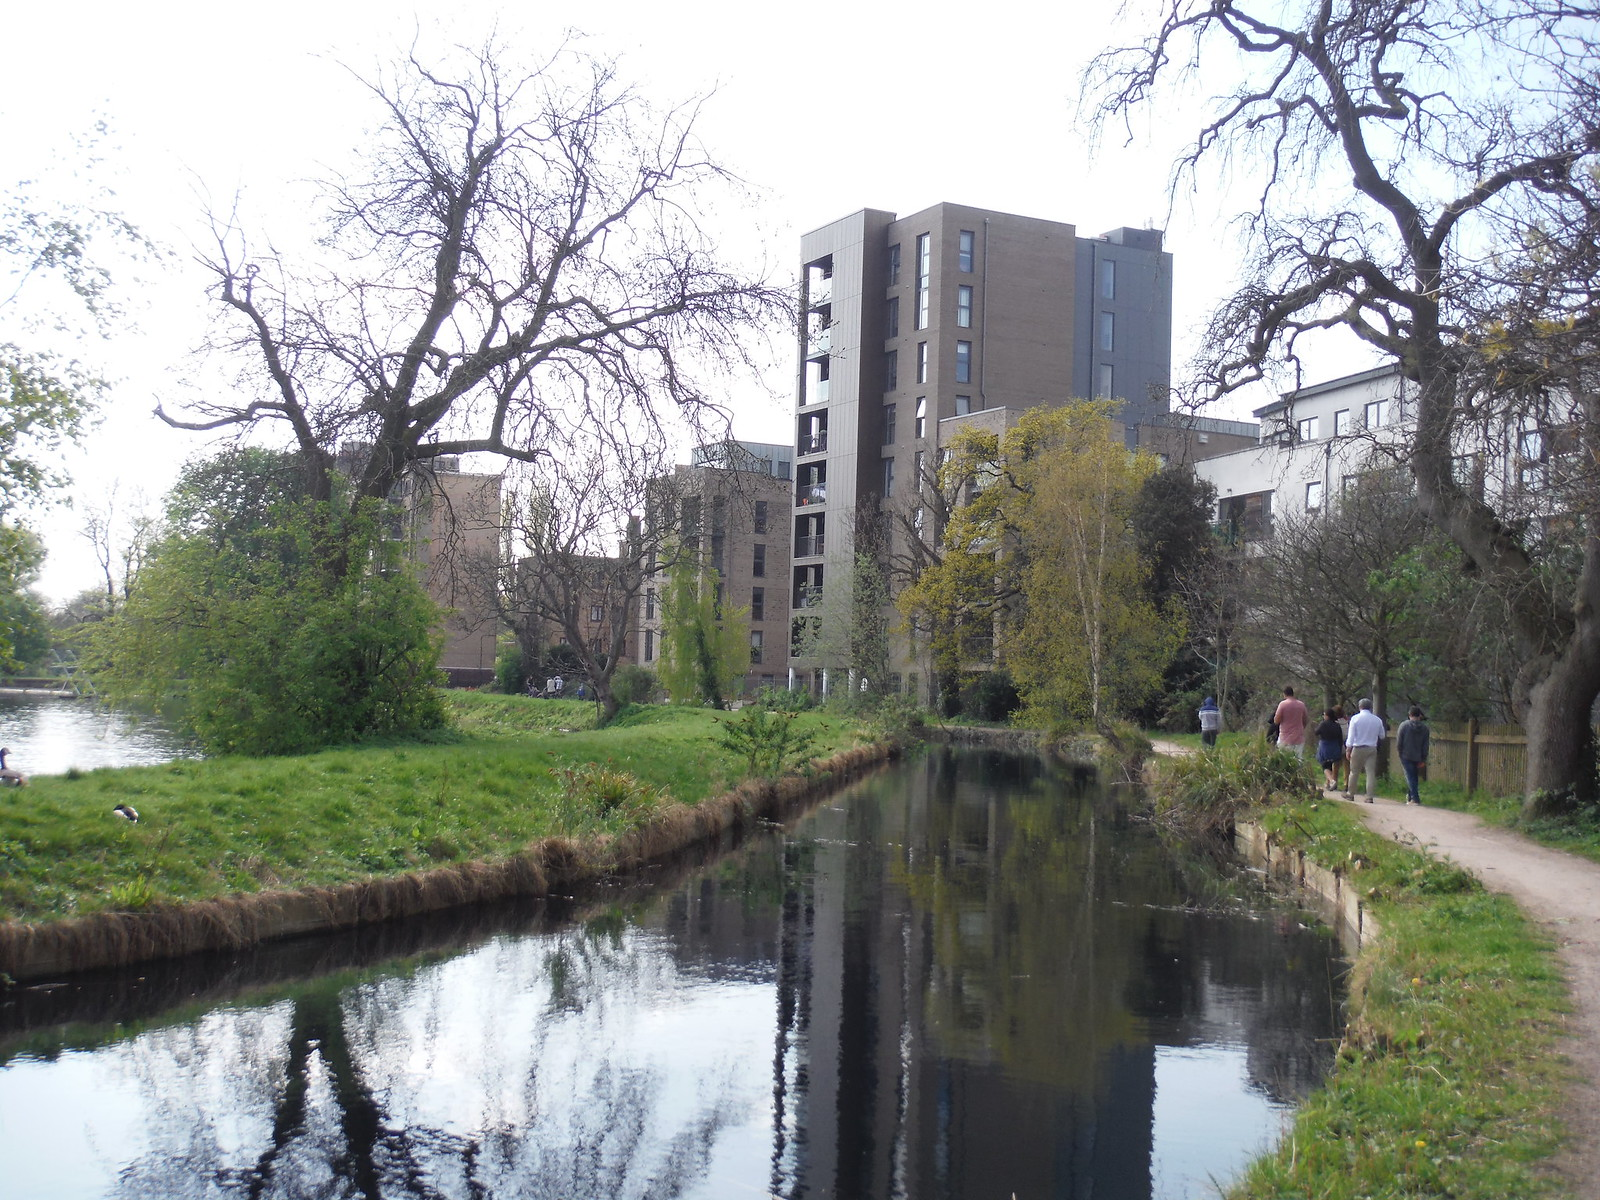 The New River, Stoke Newington SWC Short Walk 26 - Woodberry Wetlands (Stoke Newington Reservoirs)